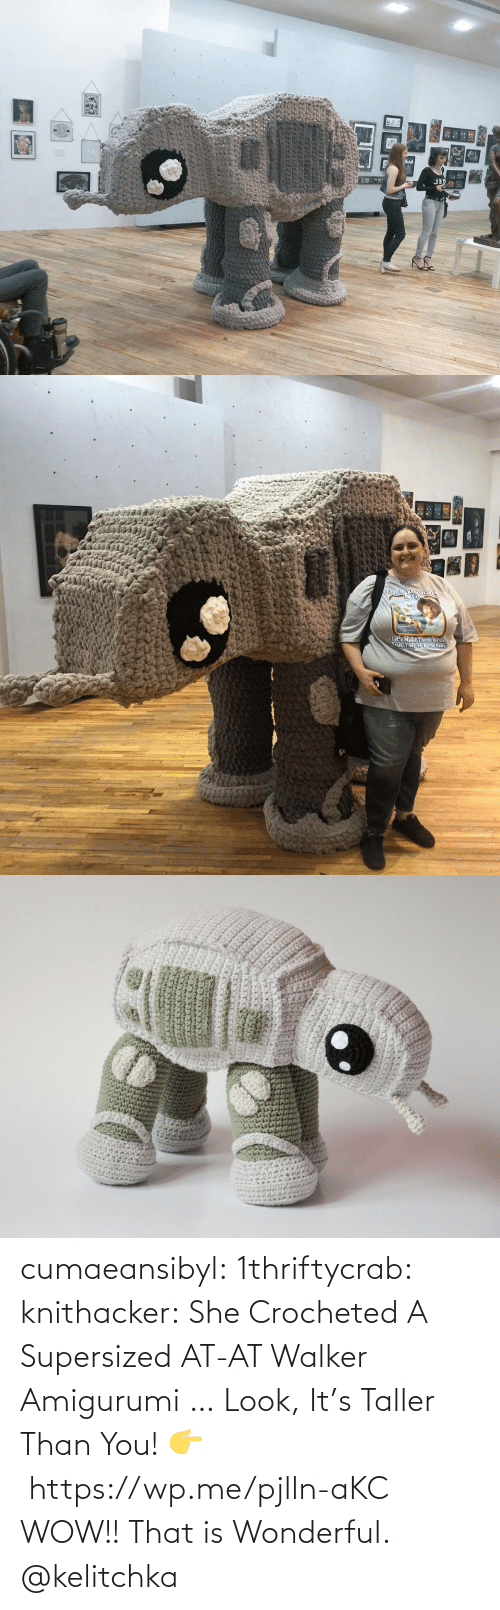 Wow: cumaeansibyl: 1thriftycrab:  knithacker:  She Crocheted A Supersized AT-AT Walker Amigurumi … Look, It's Taller Than You! 👉 https://wp.me/pjlln-aKC  WOW!! That is Wonderful.   @kelitchka